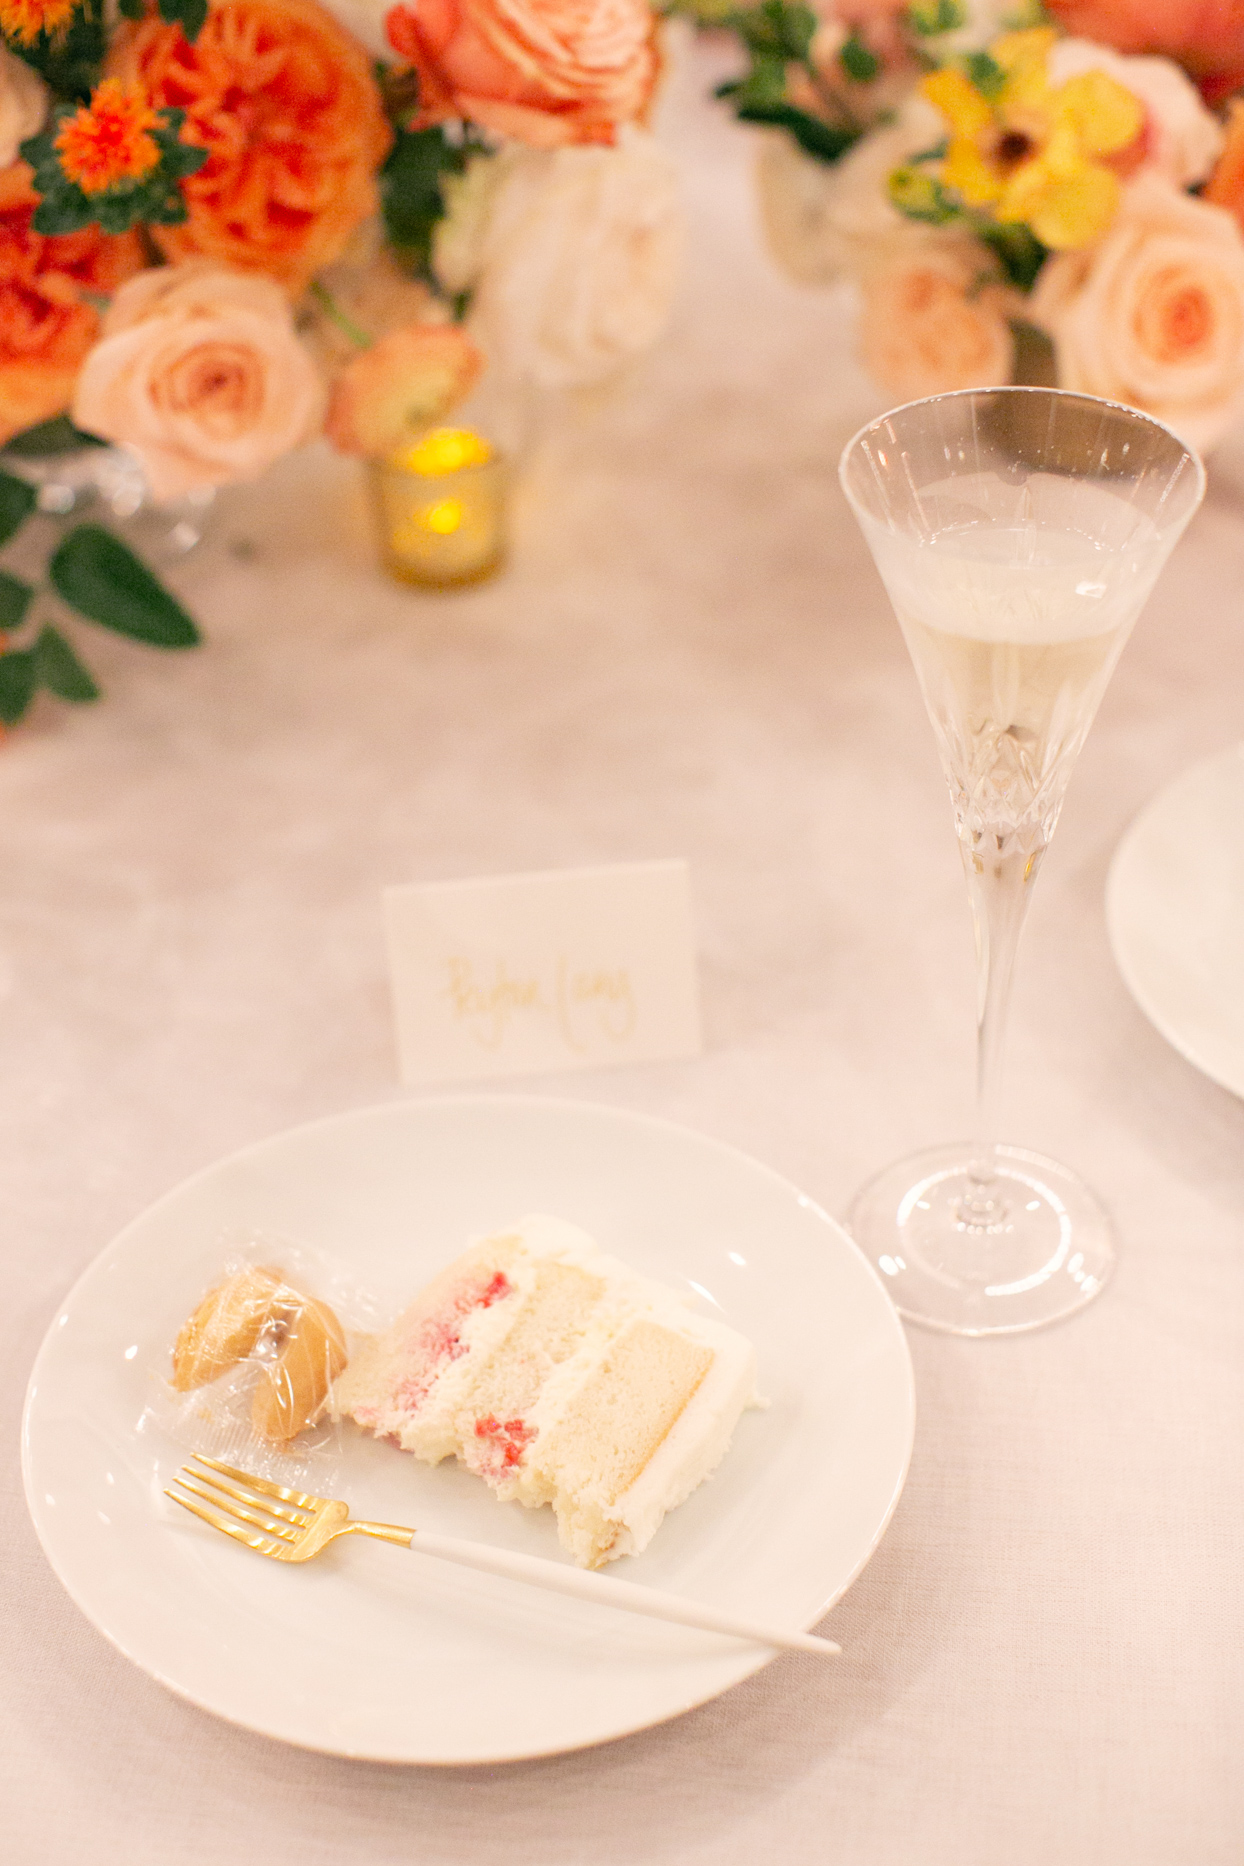 slice of cake and fortune cookie on plate at wedding reception